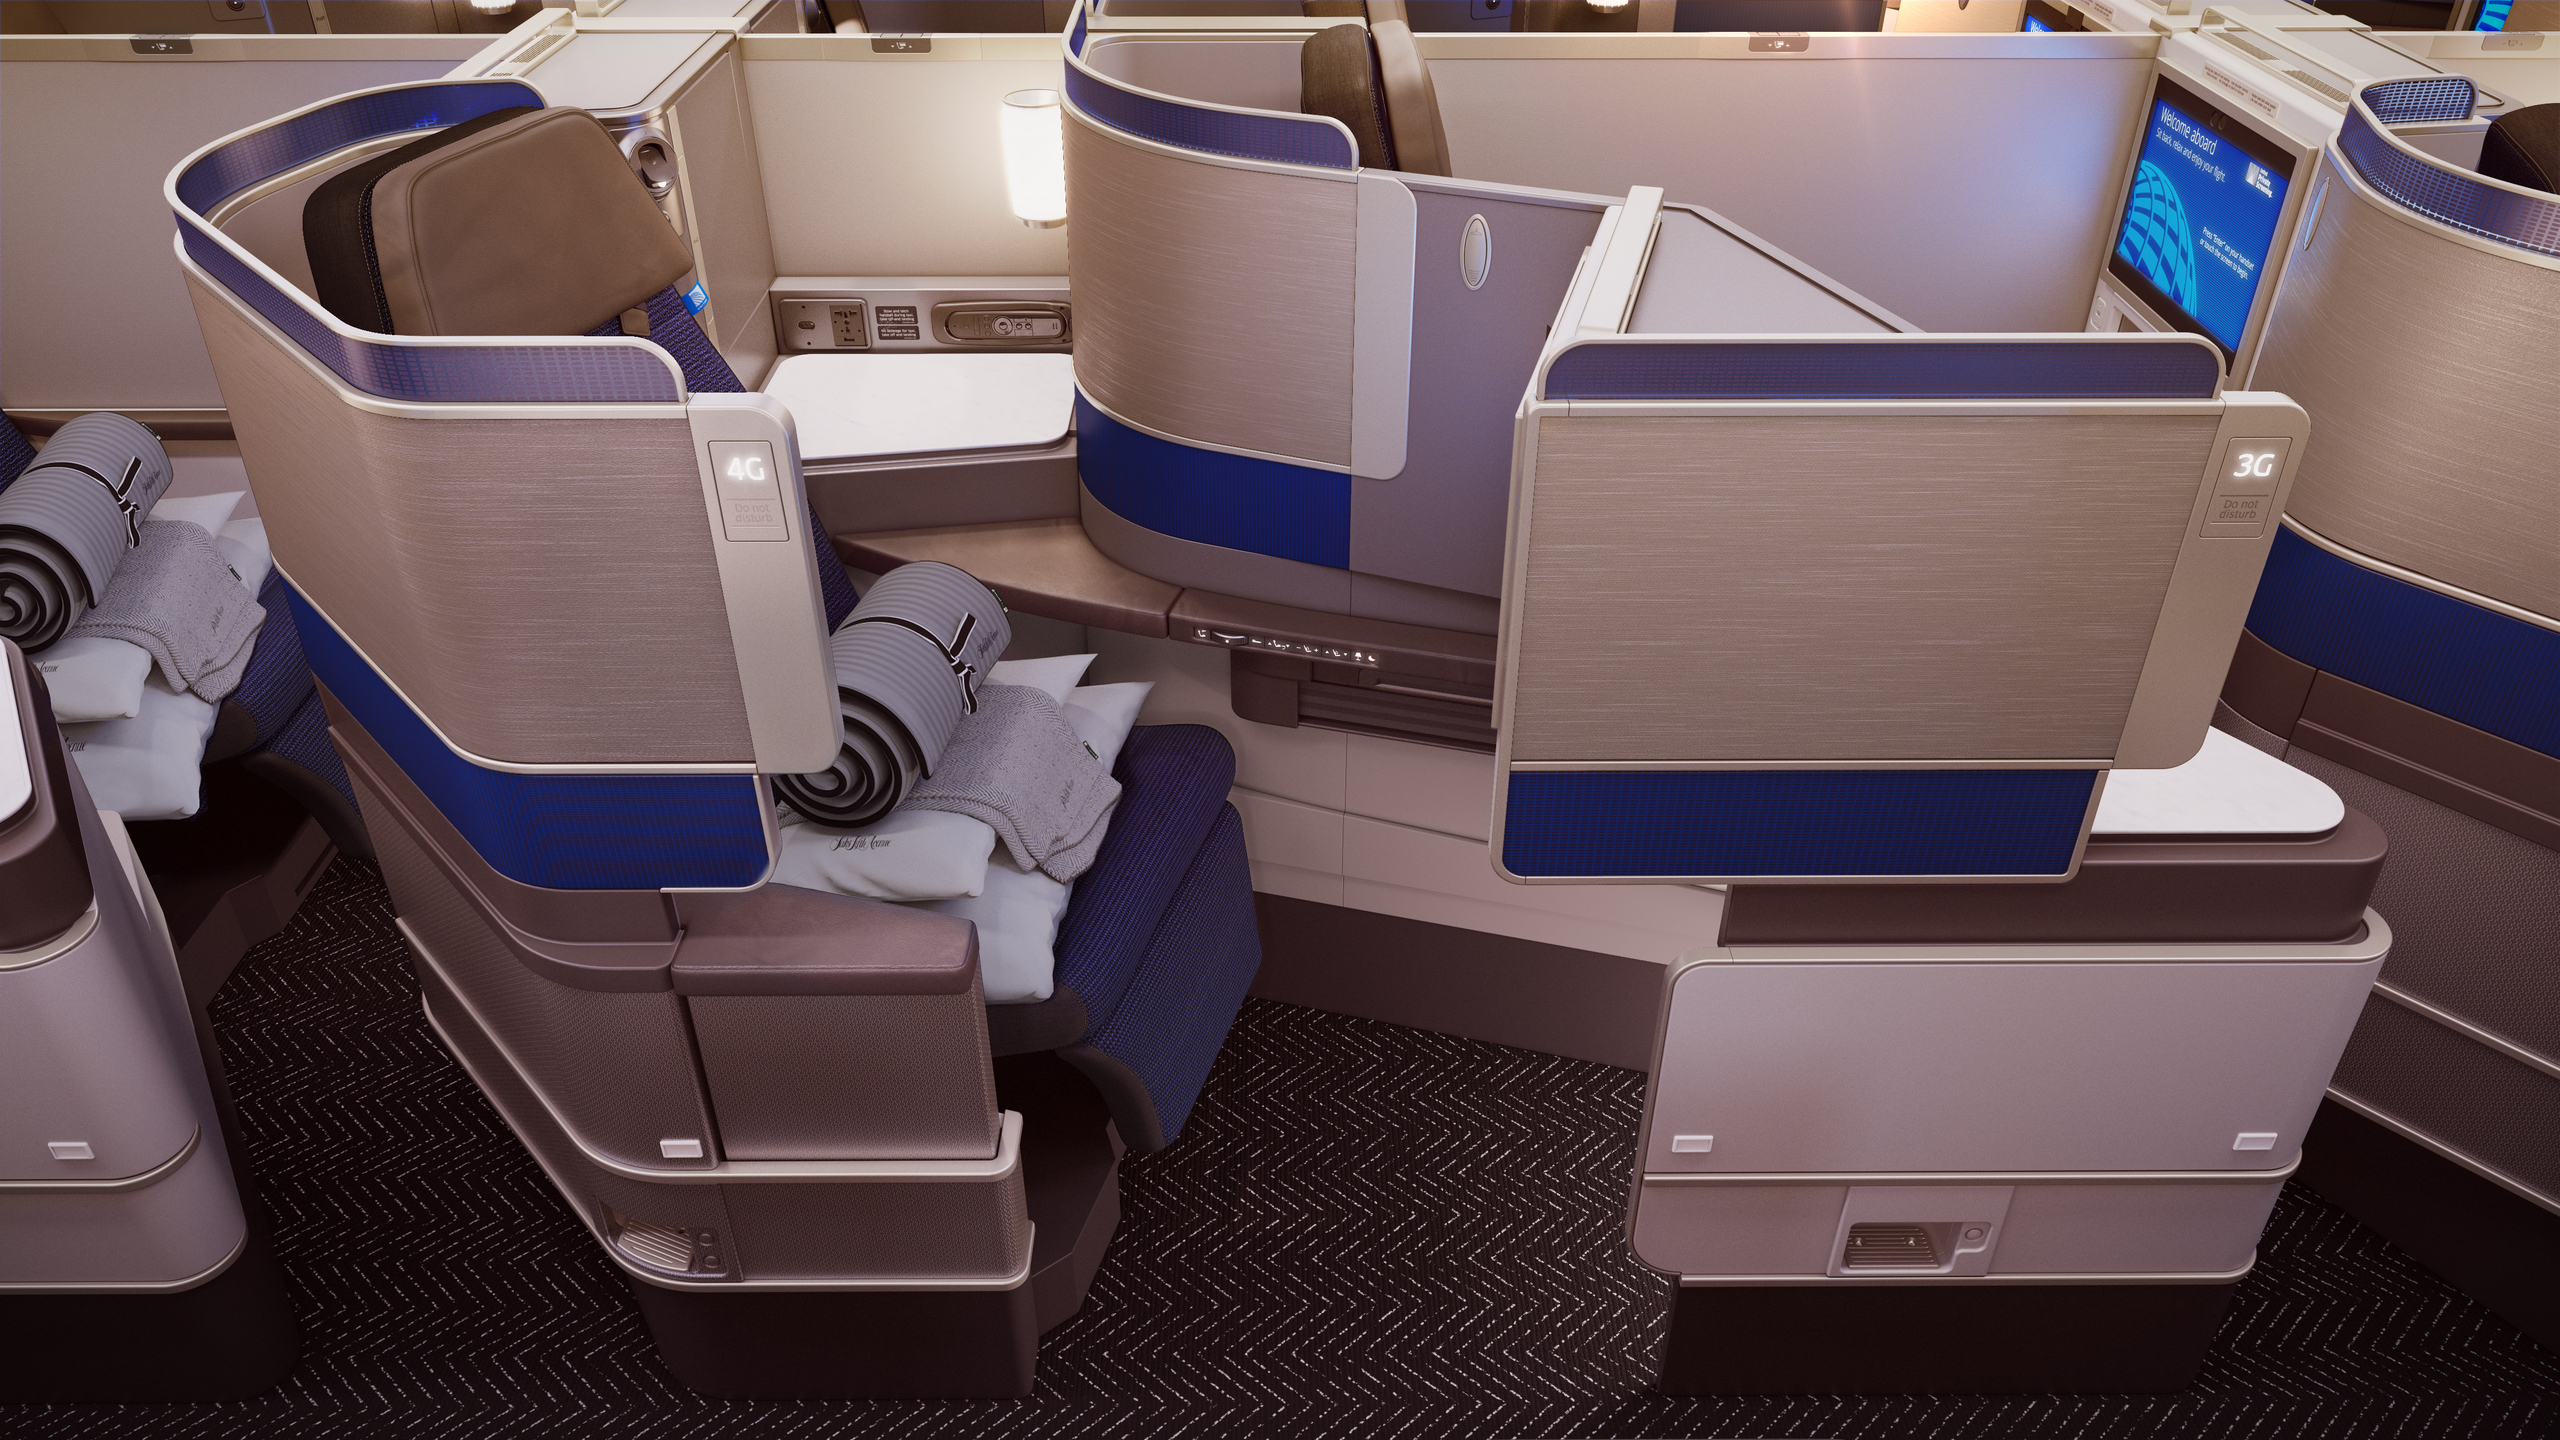 Side view of new United Business Class seats show aisle access.